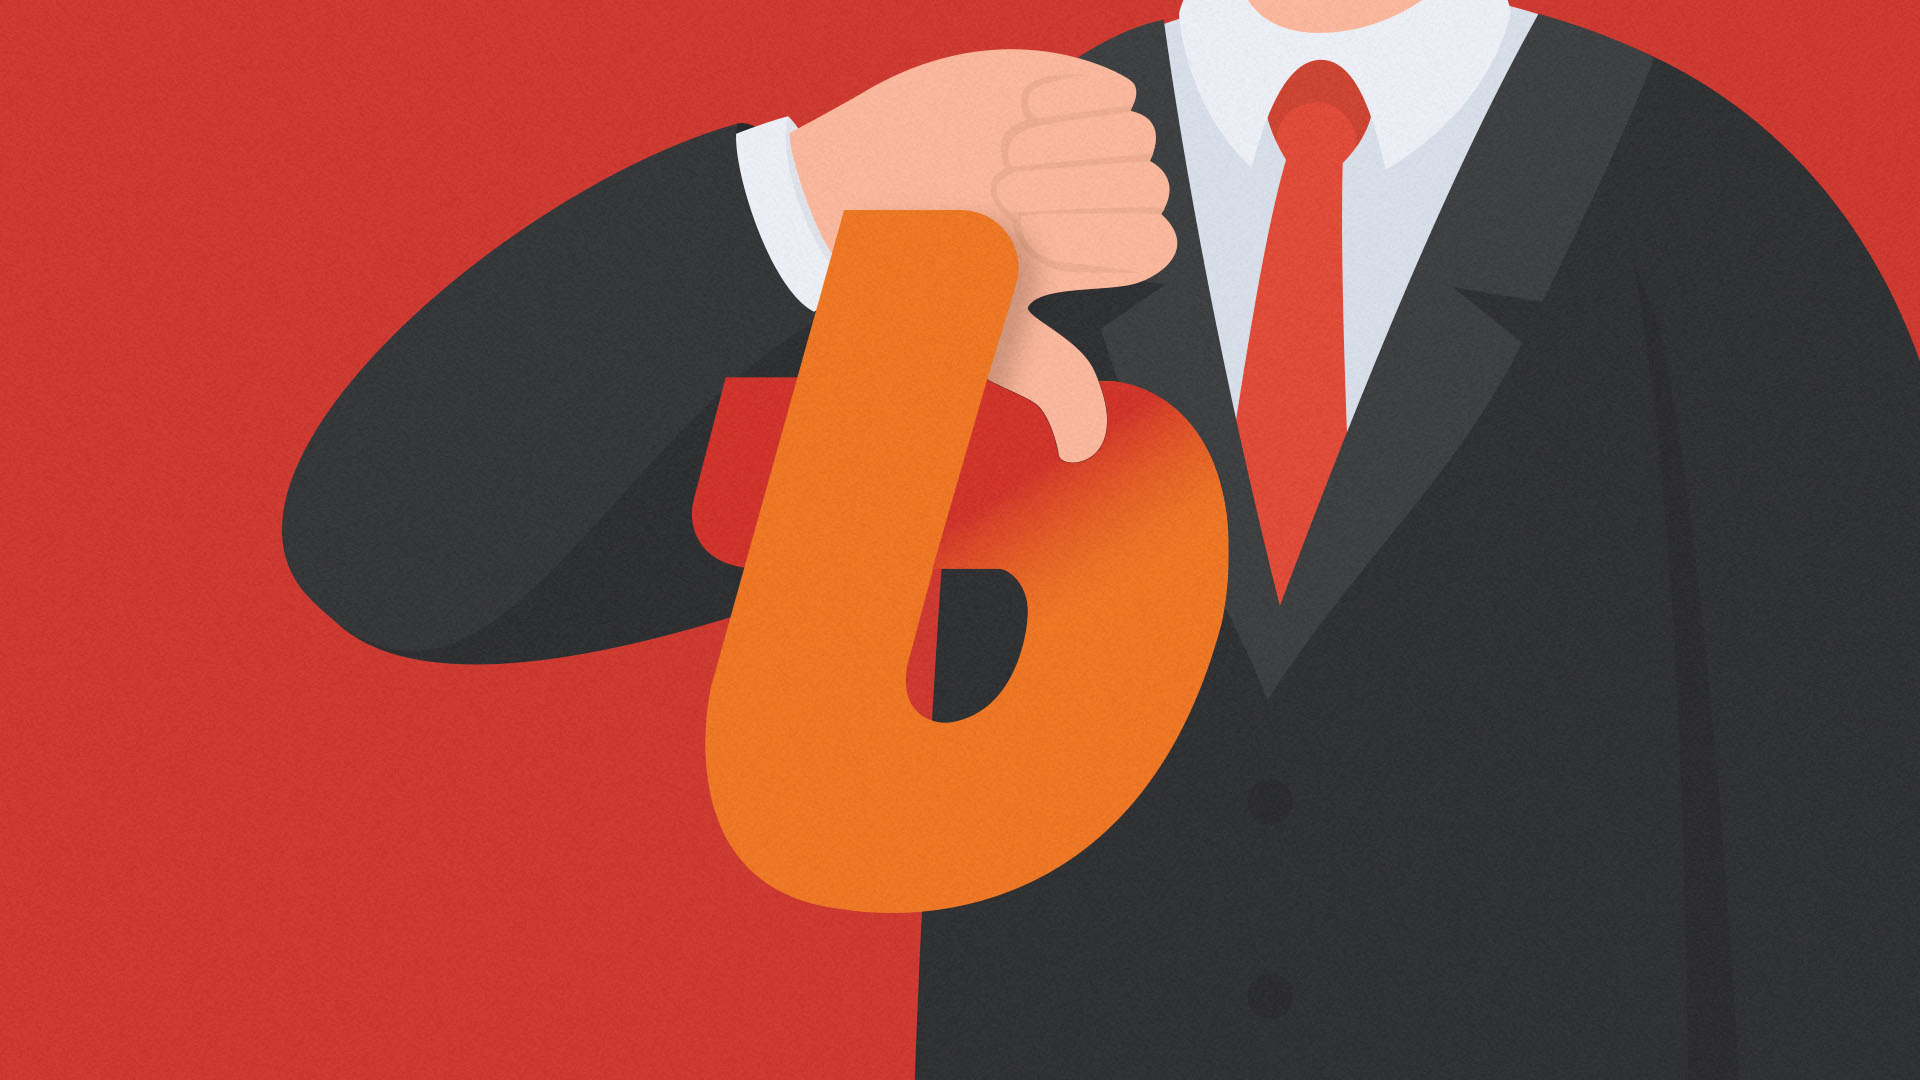 Bithumb logo in front of suited person giving thumbs down gesture